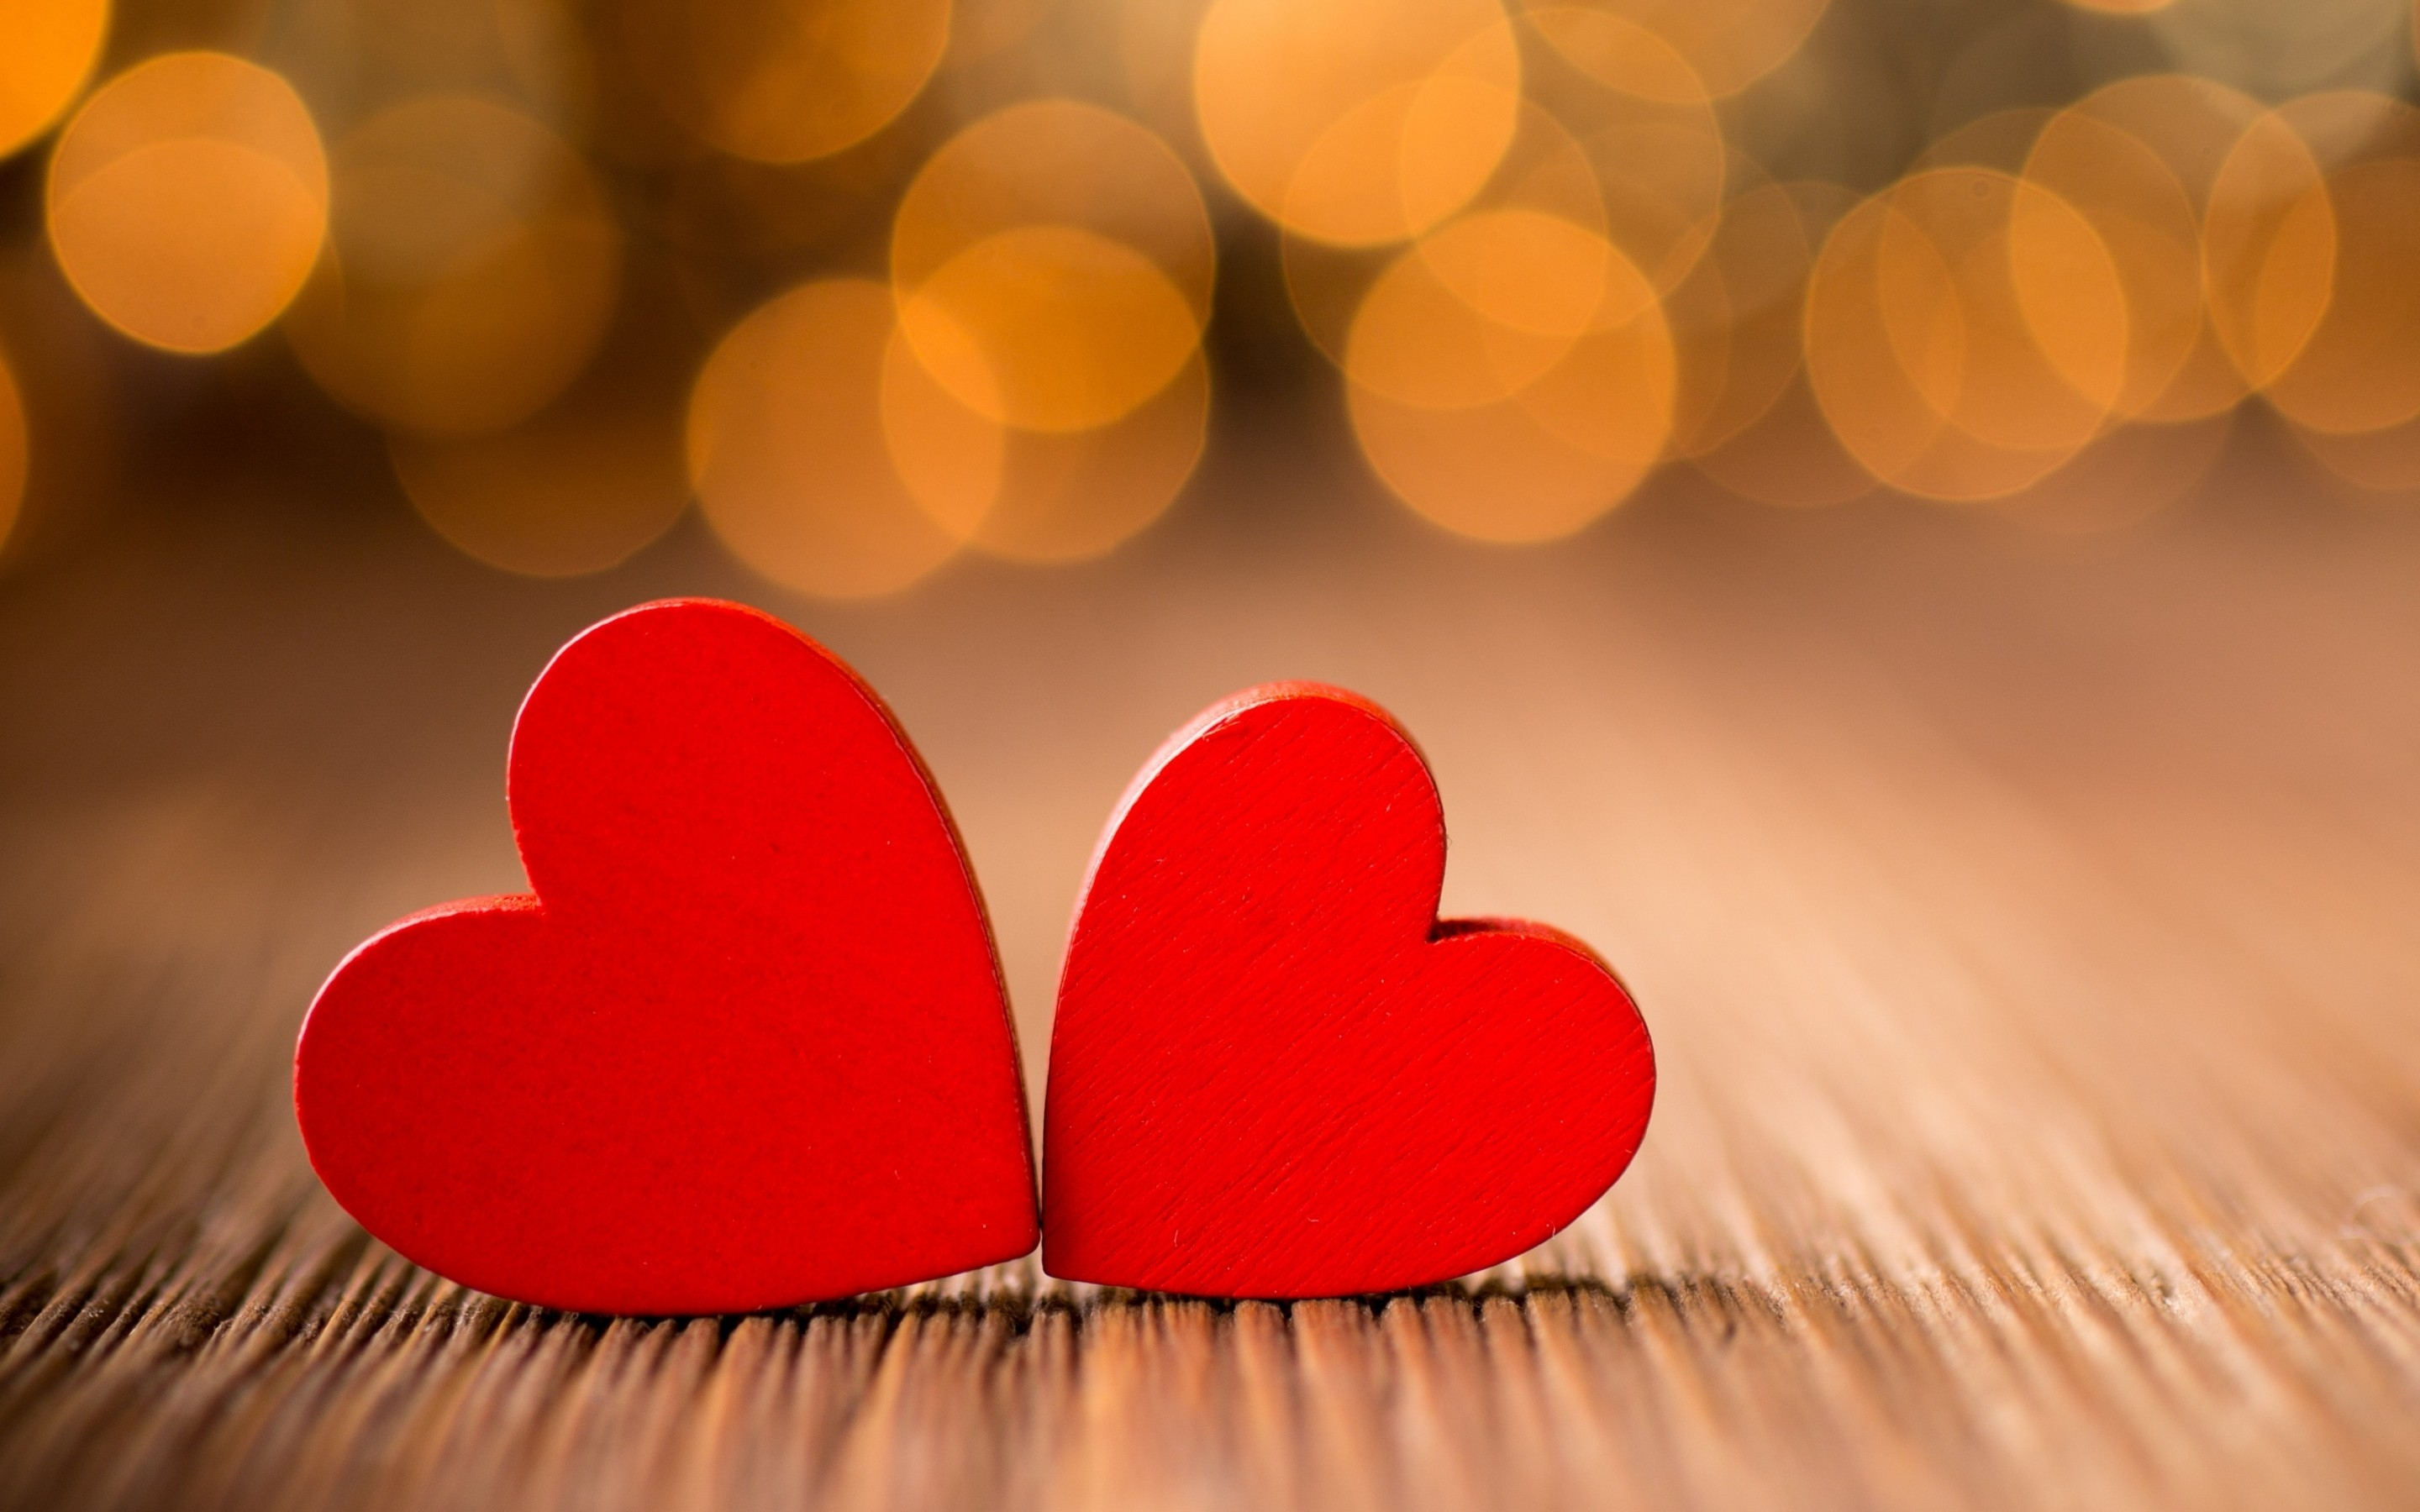 We Found 20 Images In Love Wallpaper Gallery 10588 Hd